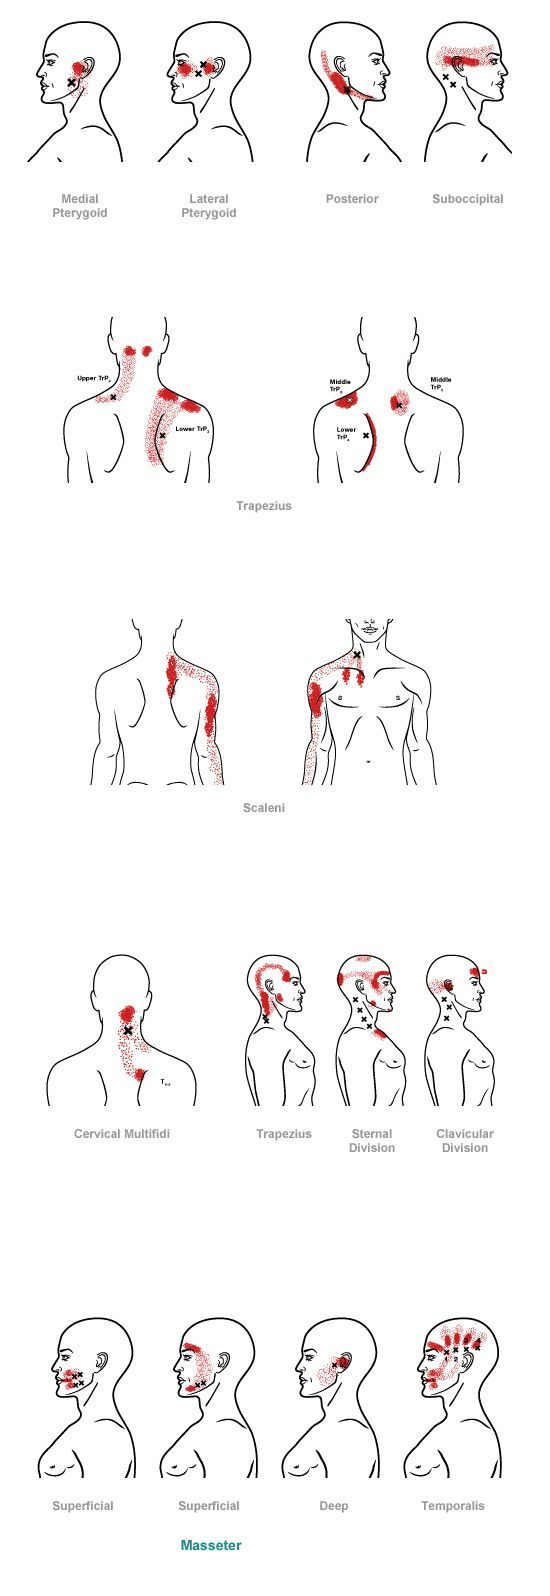 trigger point referral pain pattern for the head & neck